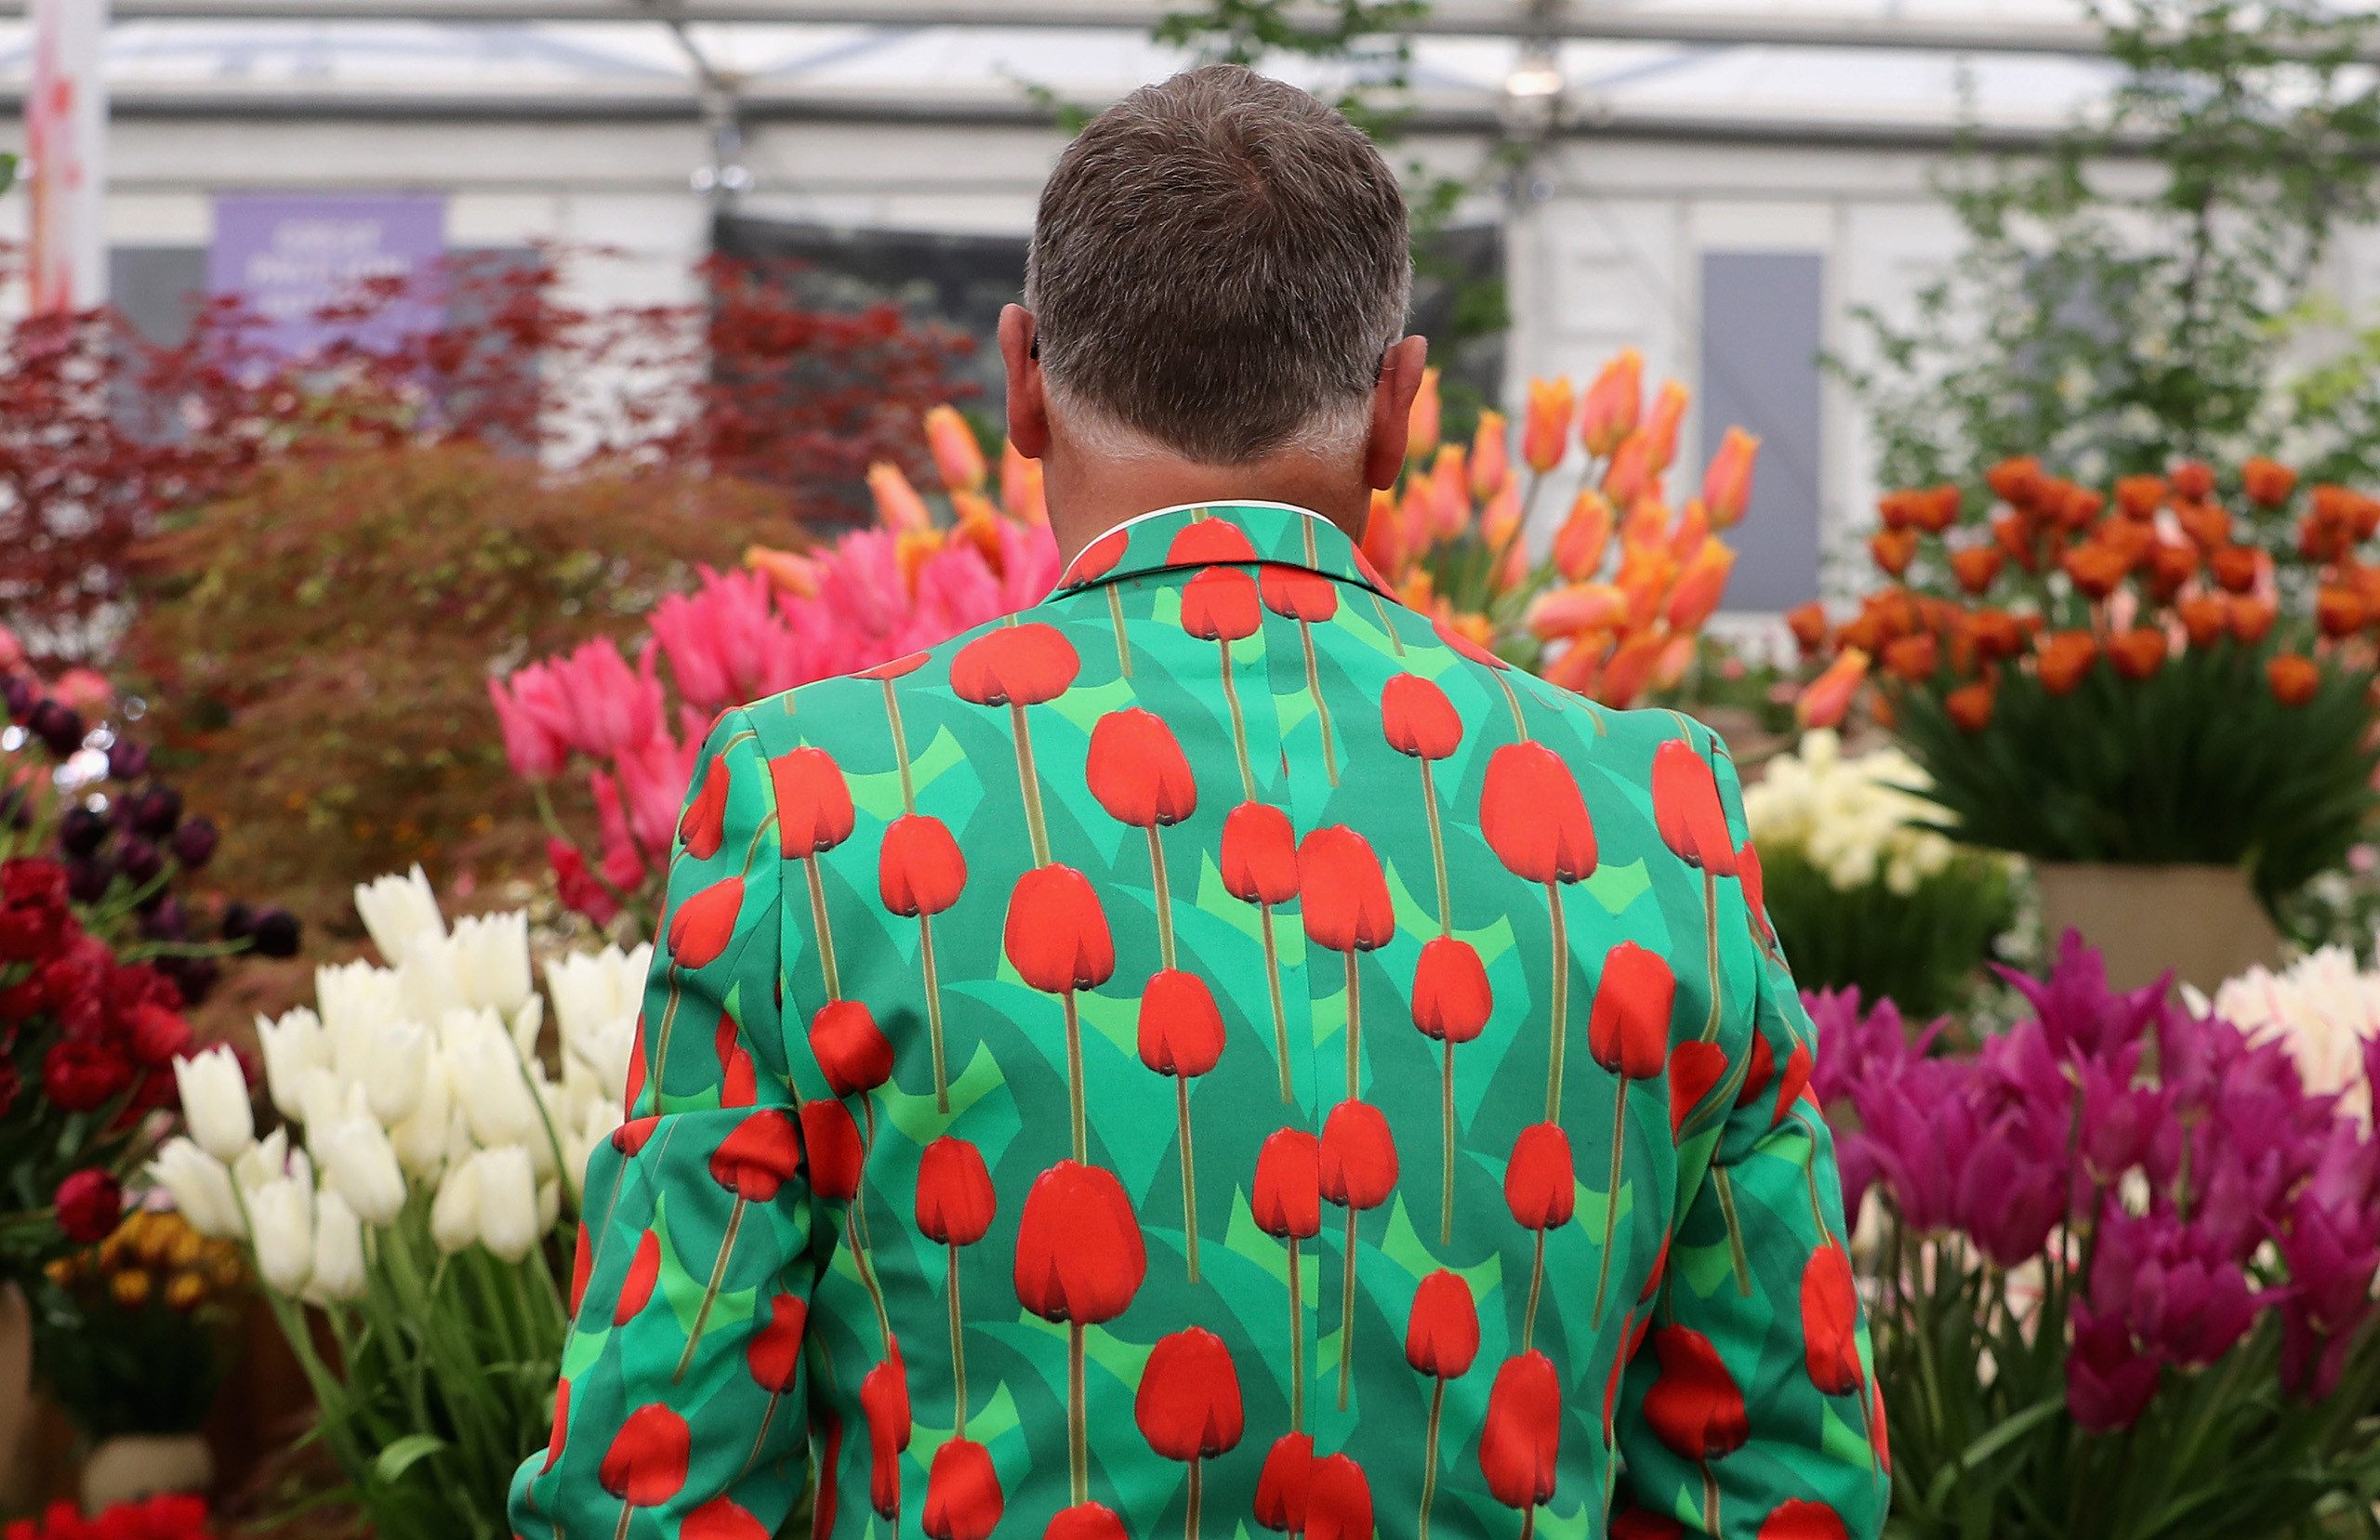 A man waters tulips in a tulip suit at the RHS at the Chelsea Flower Show in London on May 23, 2016.